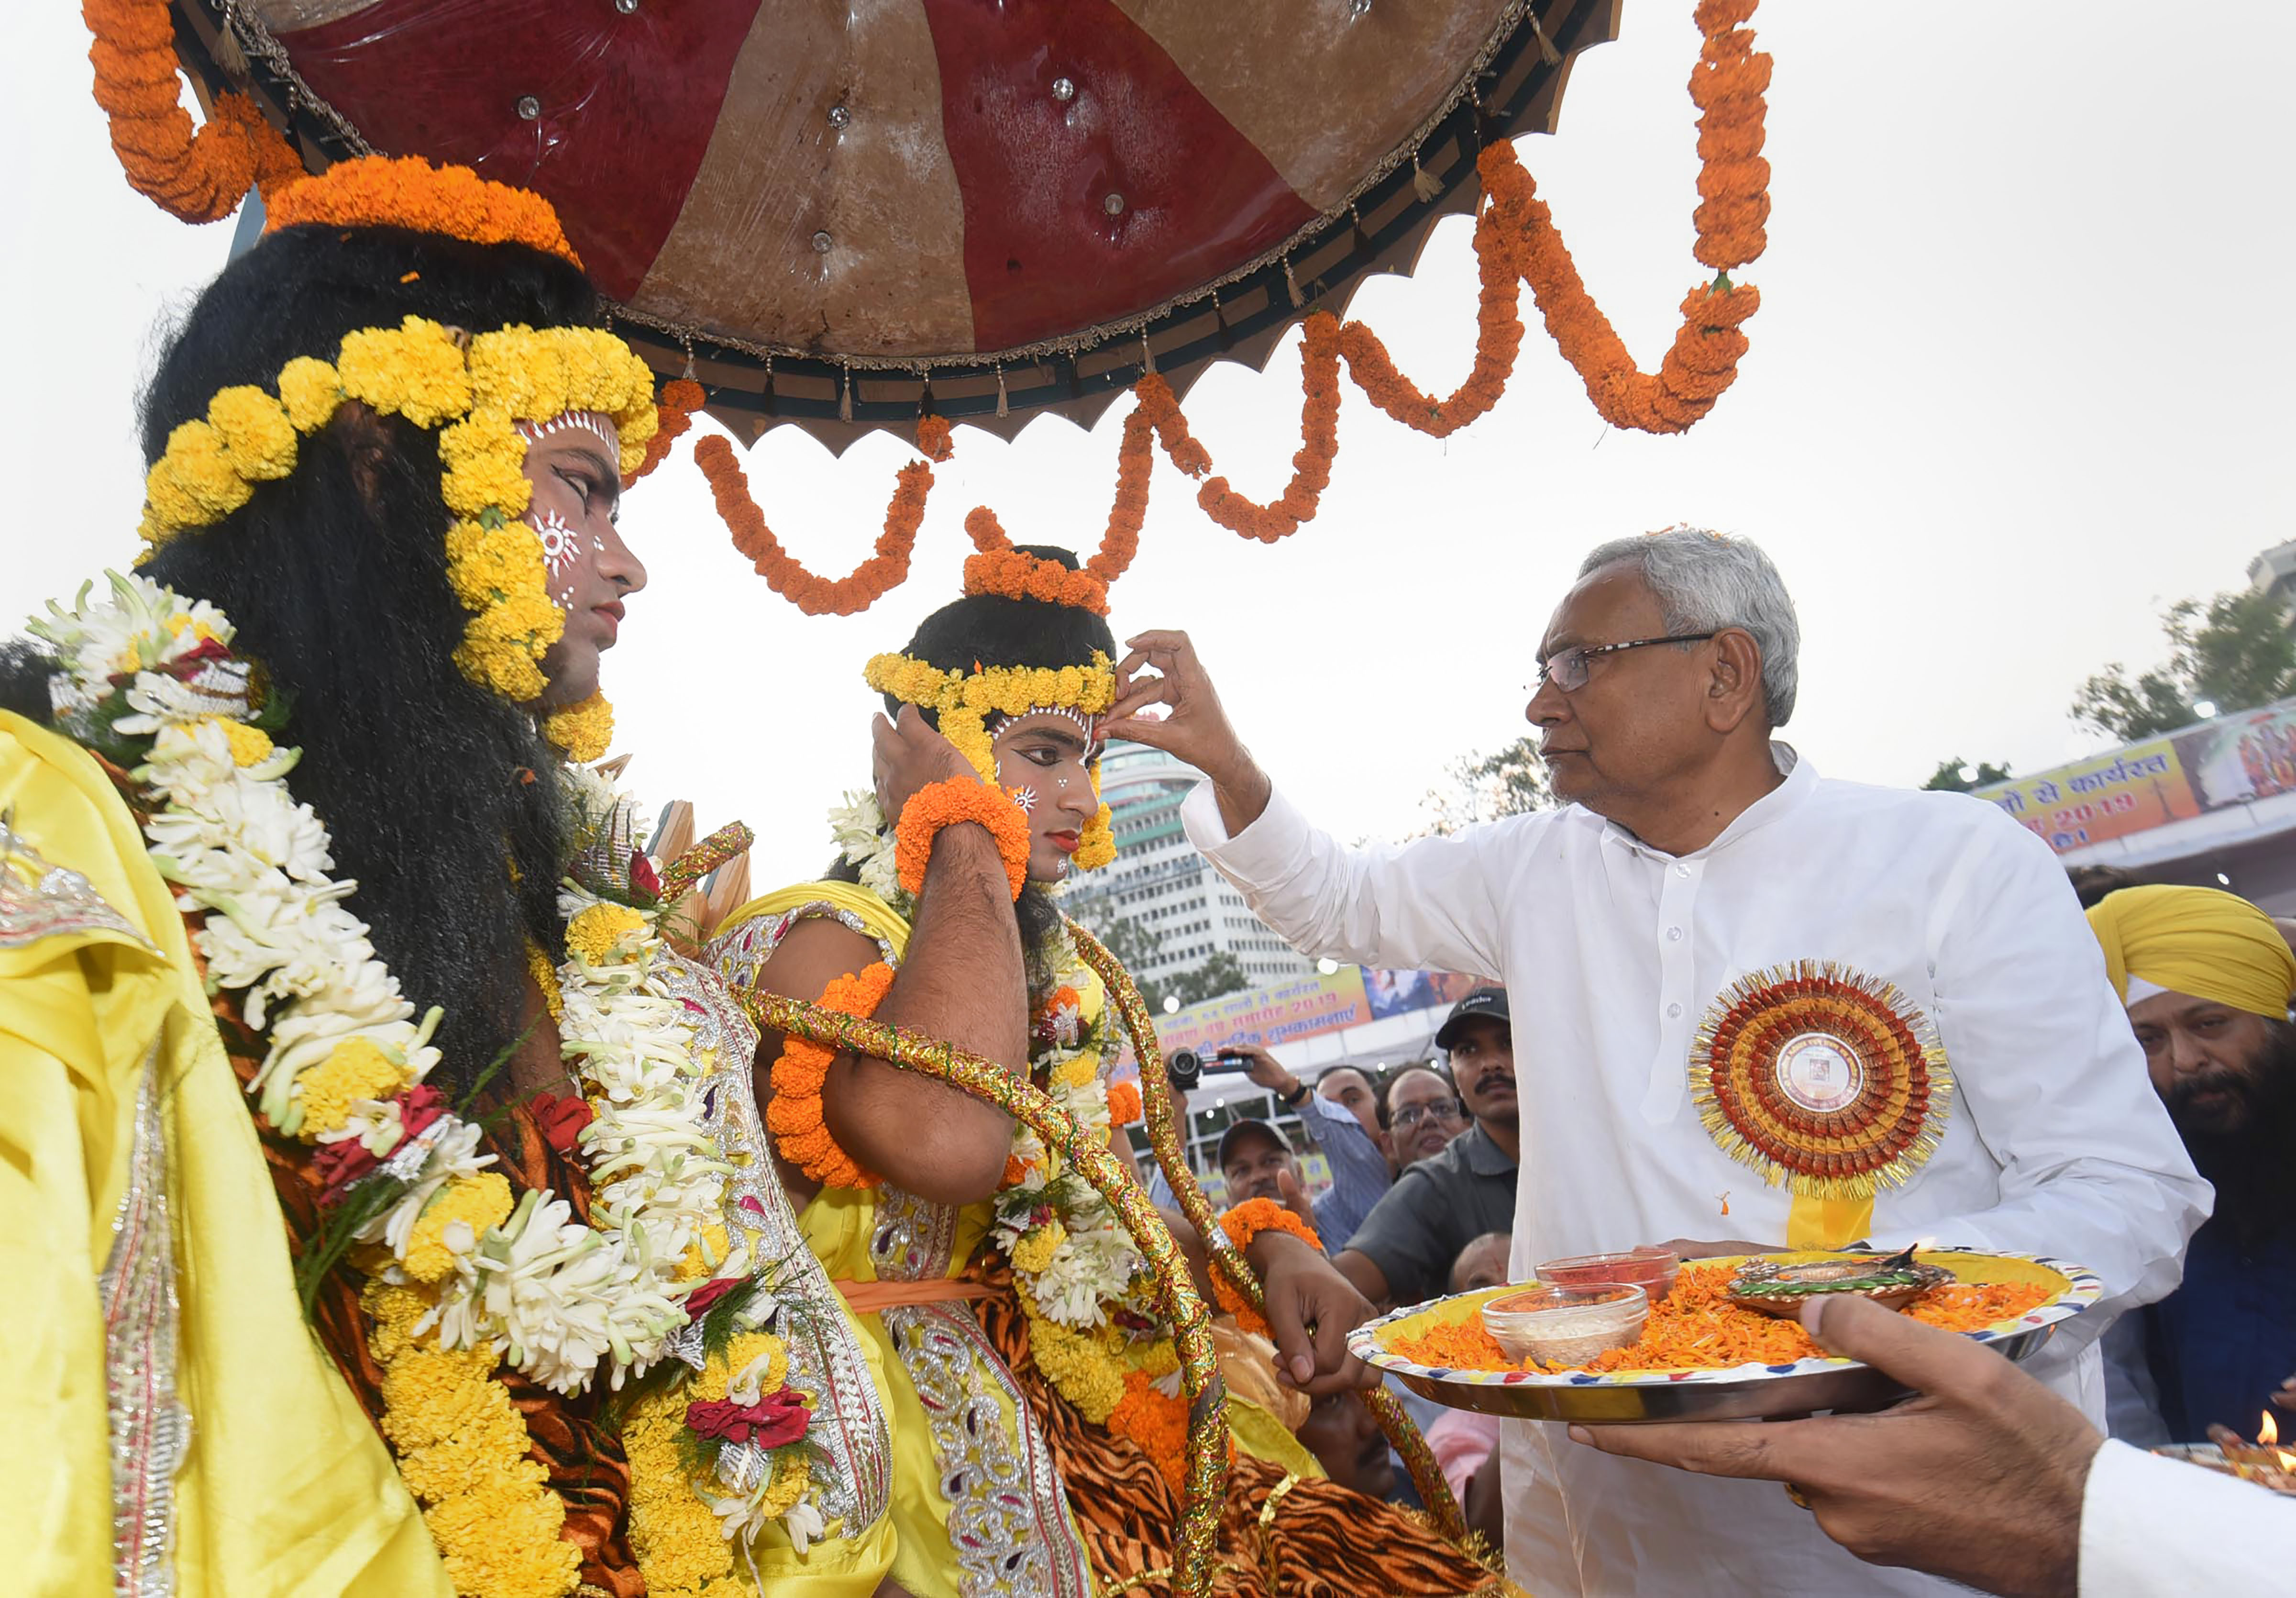 Bihar chief minister Nitish Kumar applies tilak on the forehead of an artist dressed as Lord Ram during Dussehra celebrations at Gandhi Maidan in Patna, Tuesday, October 8, 2019.